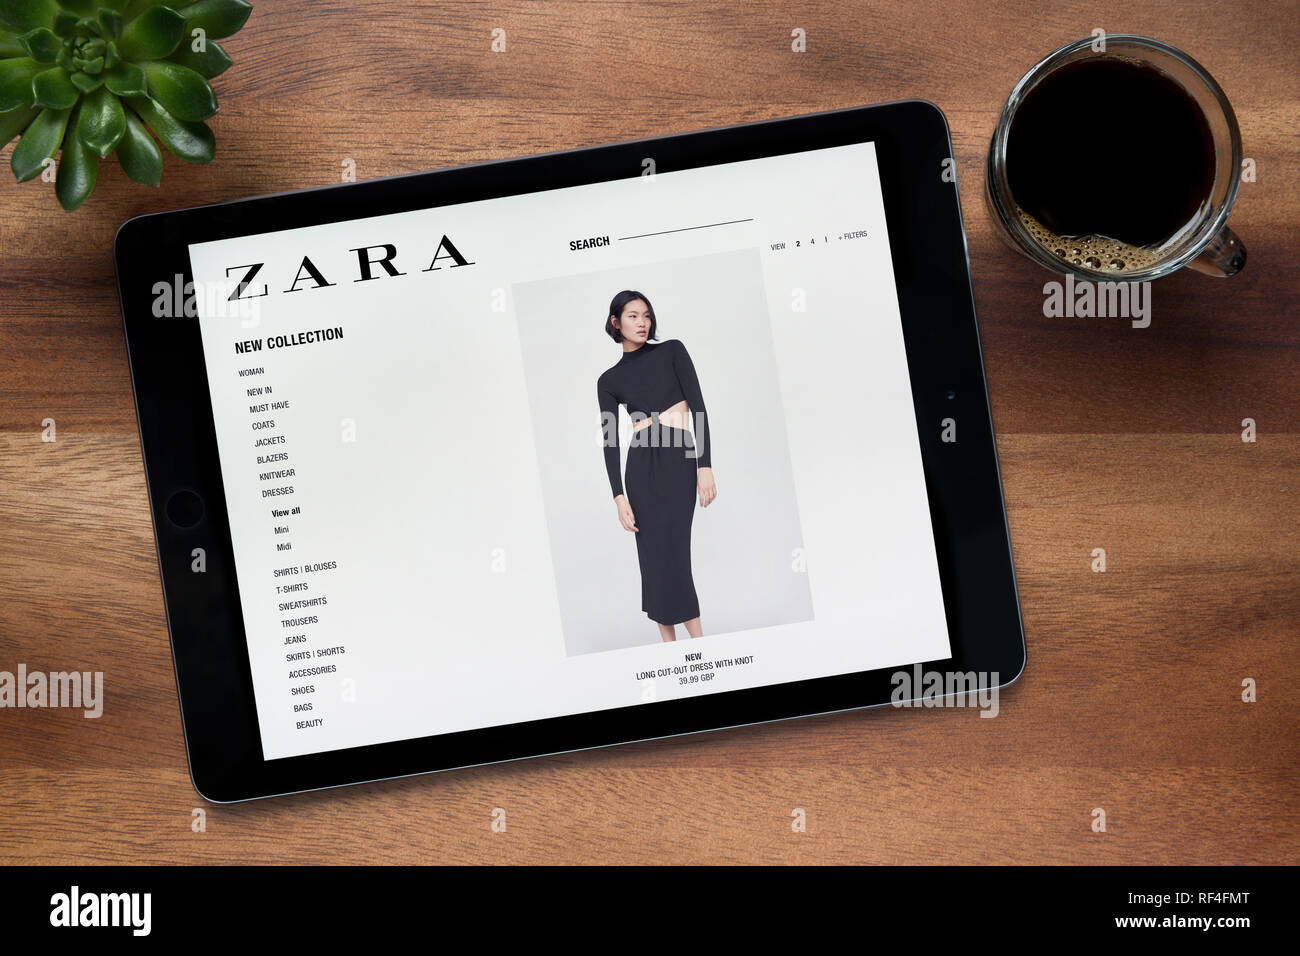 Zara Home Stock Photos & Zara Home Stock Images - Alamy